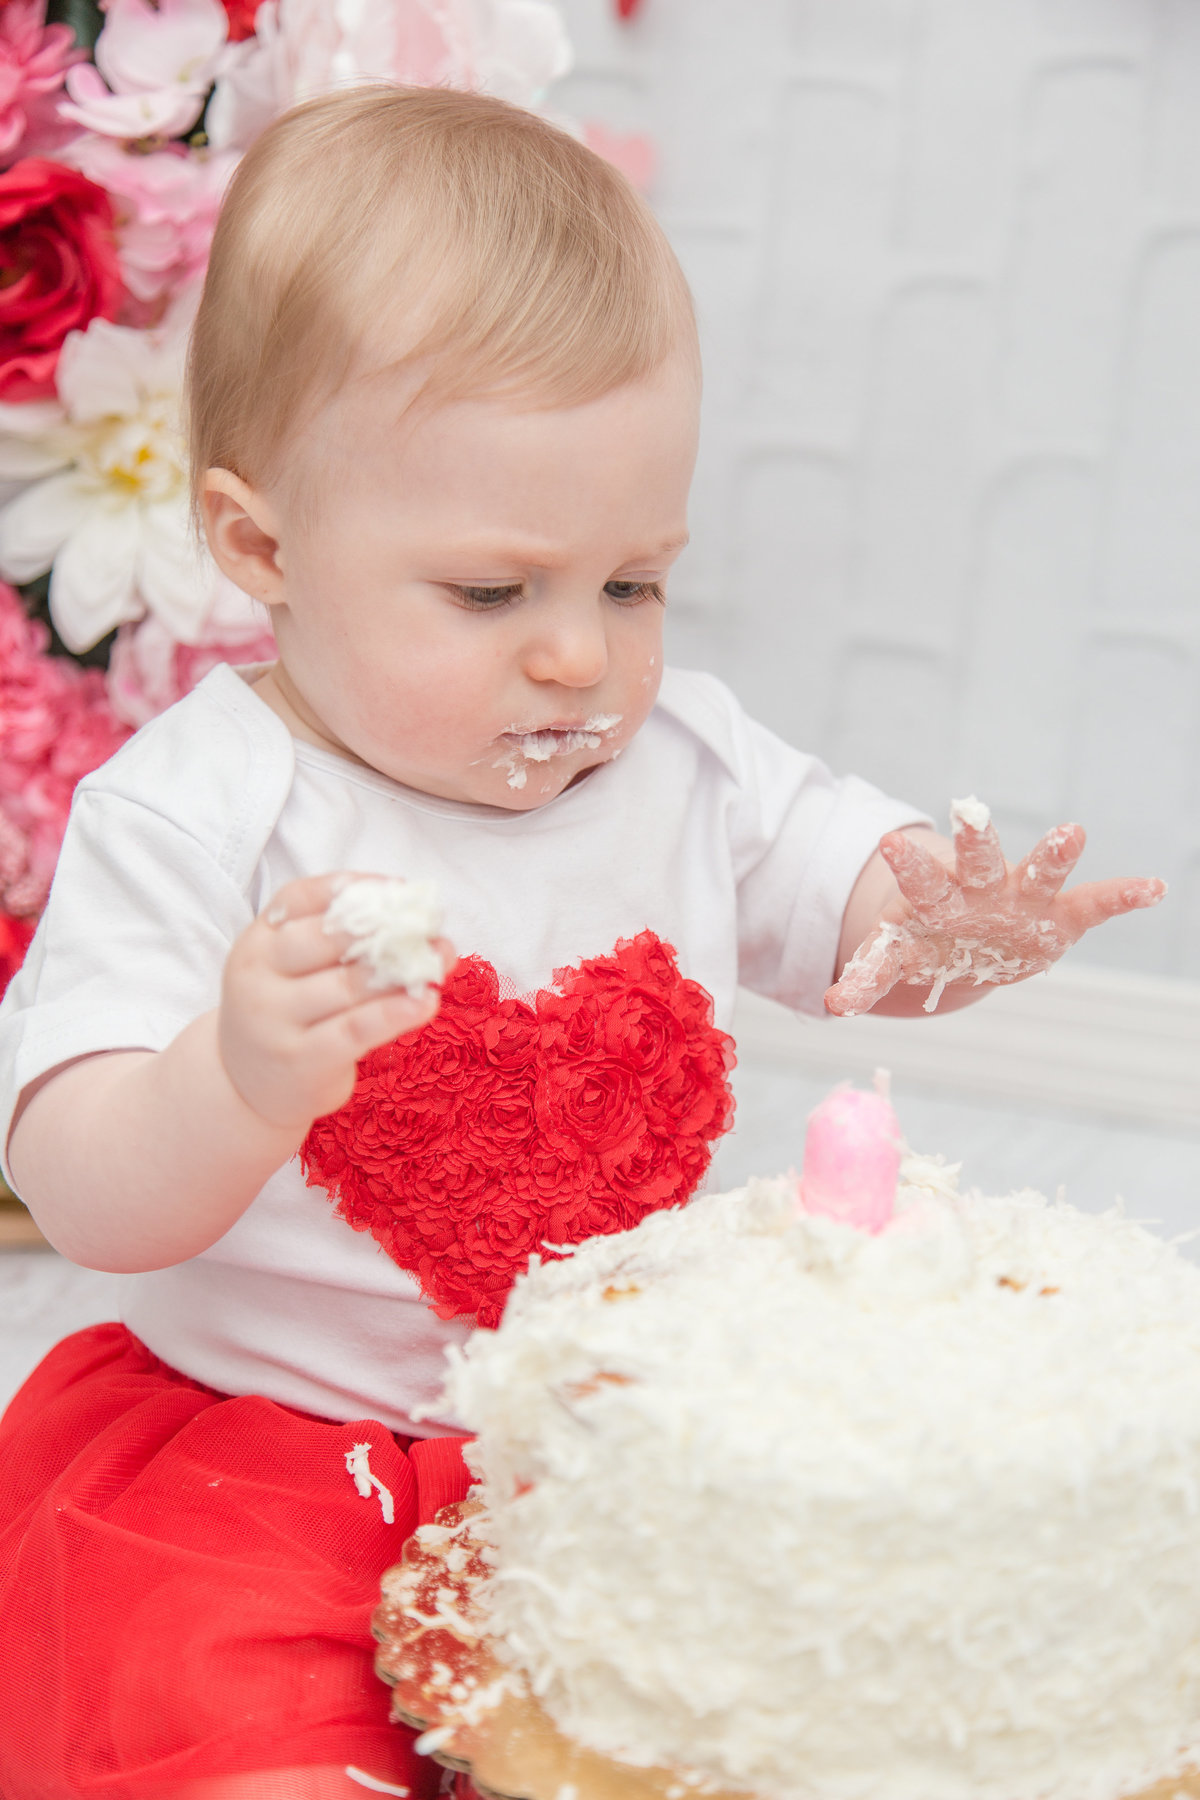 Scar-Vita-Photography-2019-COPYRIGHT-Valentines-day-cake-smash-91